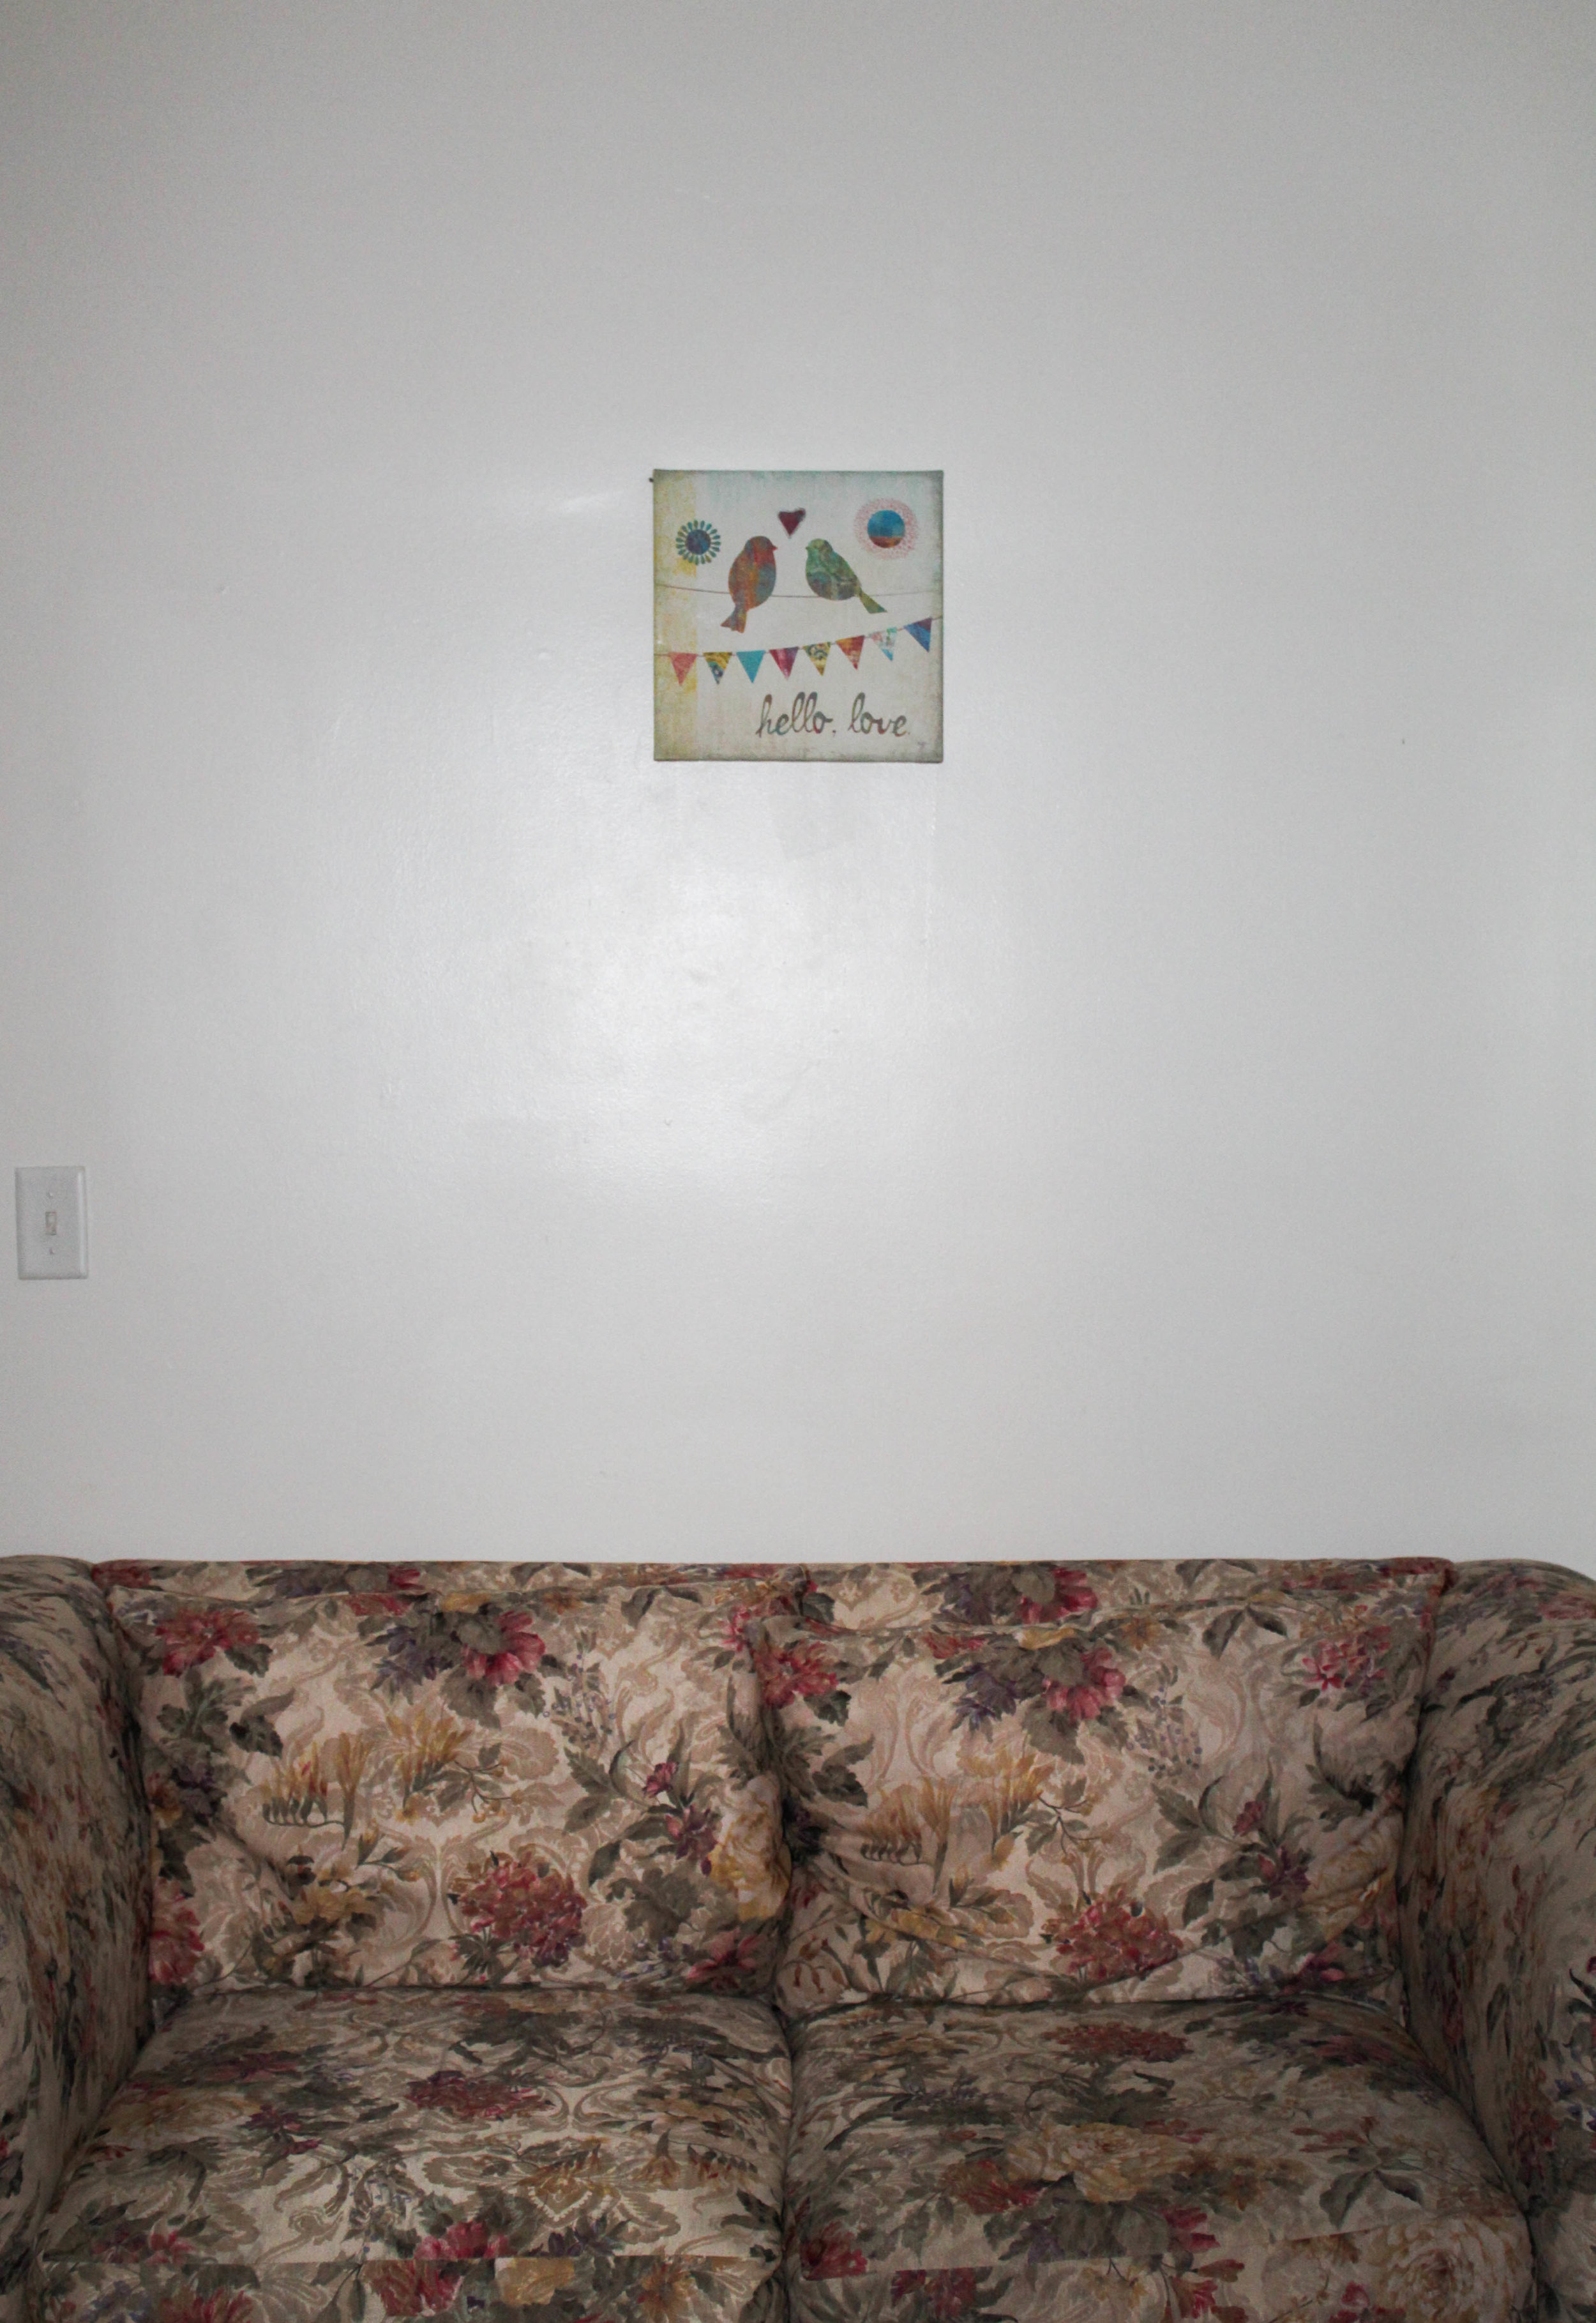 In a house on campus, the girls have a couch and wall art to make the room feel more like home.